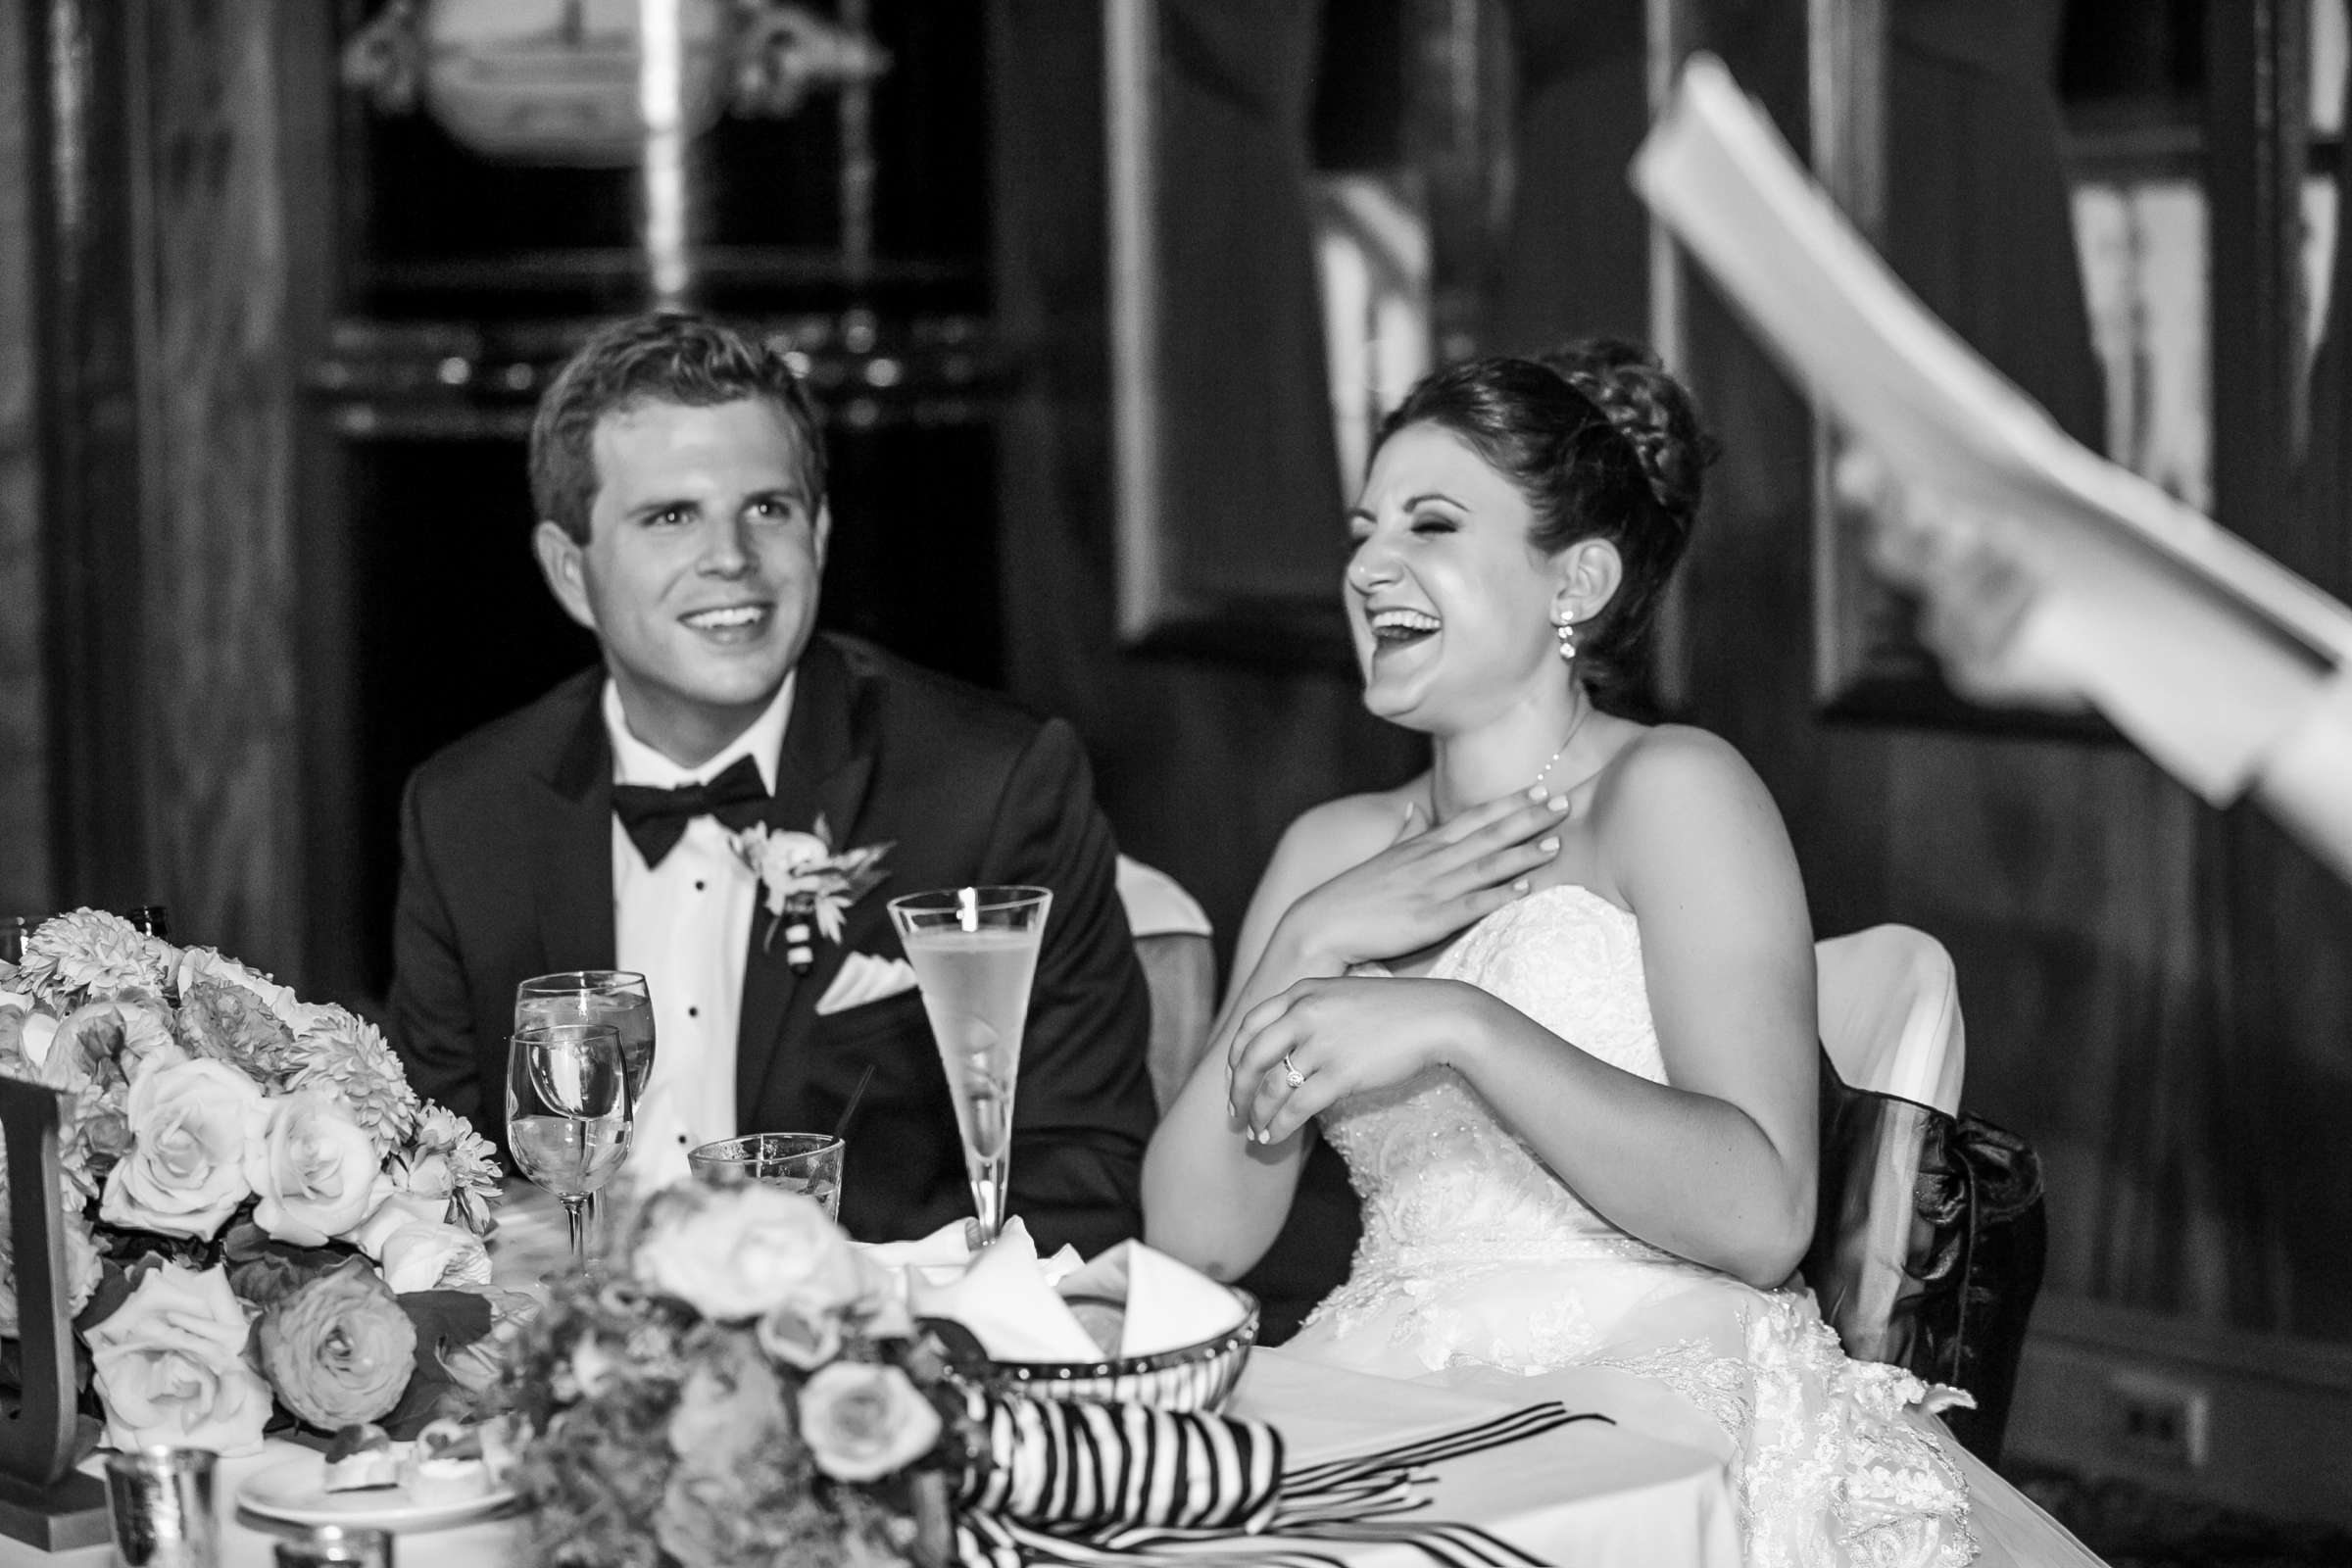 Bahia Hotel Wedding coordinated by I Do Weddings, Meredith and Jack Wedding Photo #80 by True Photography